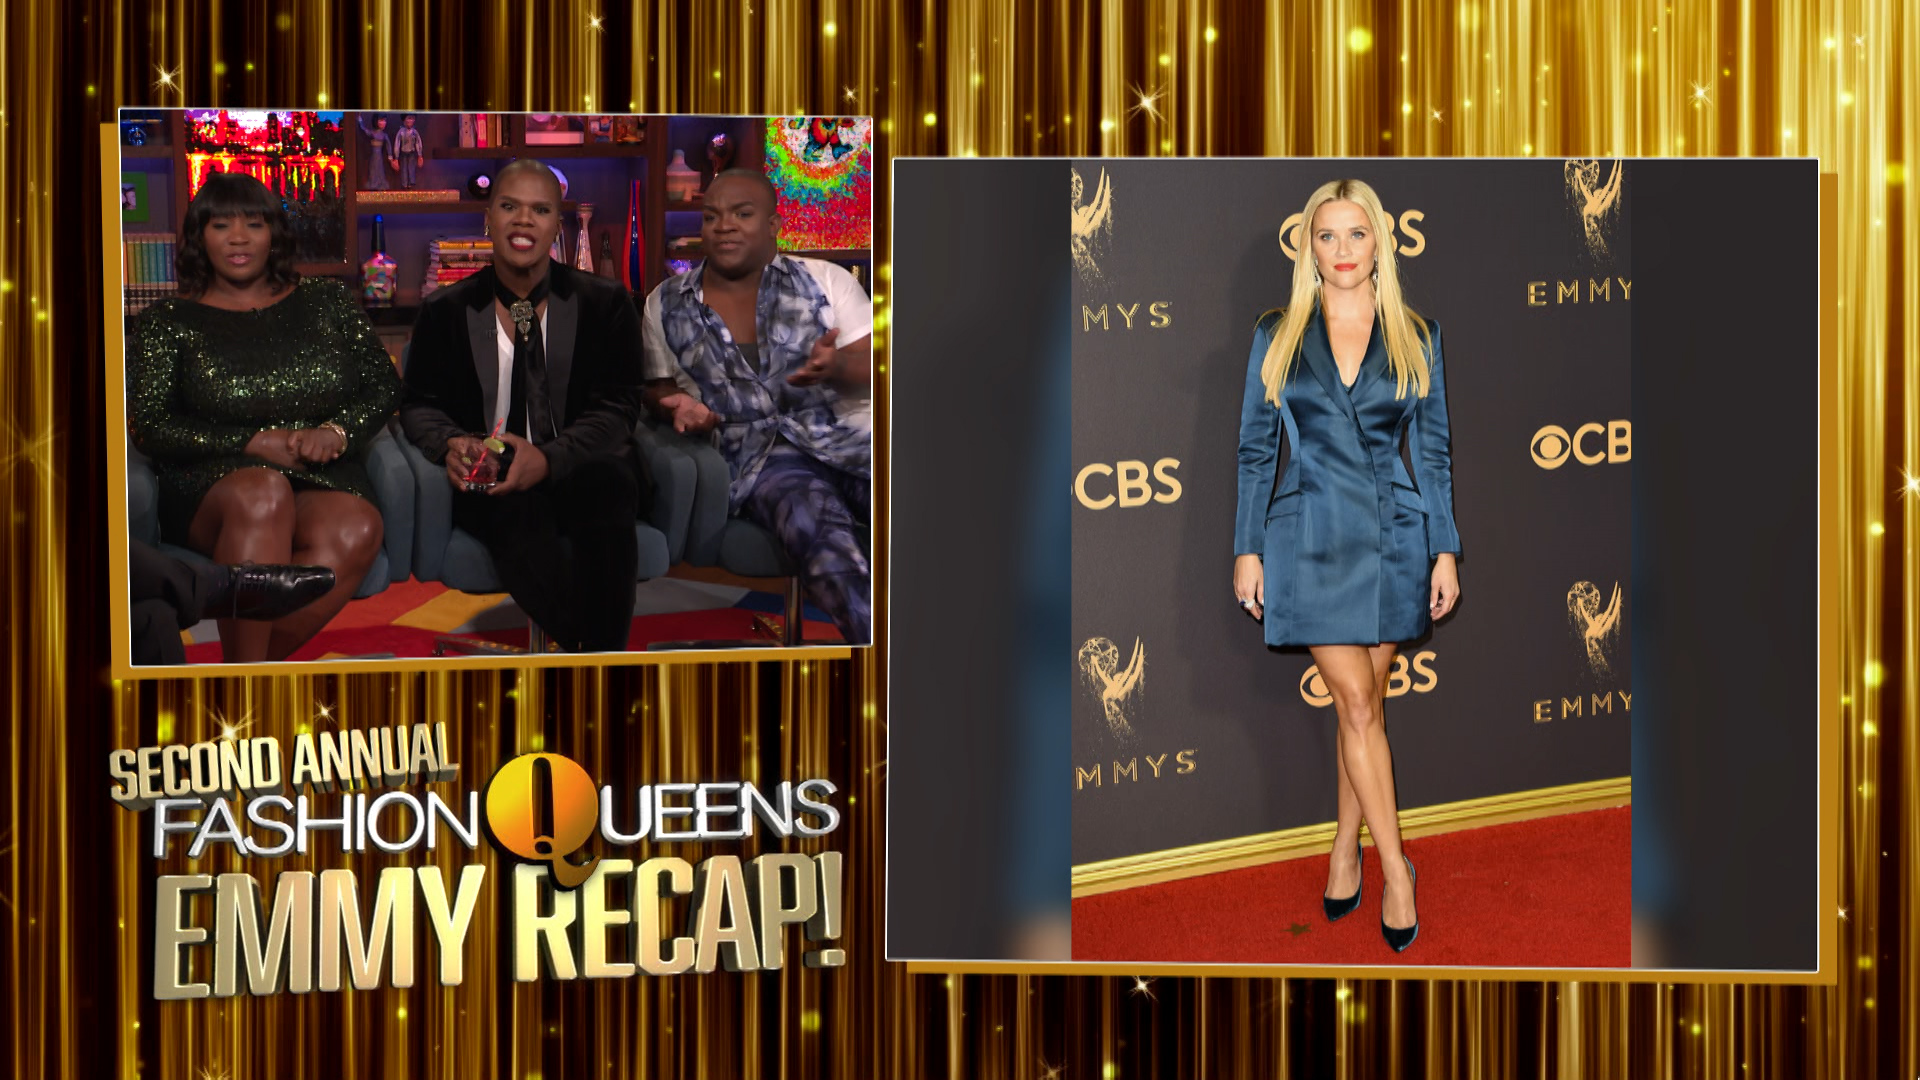 The Fashion Queens' Emmy Recap